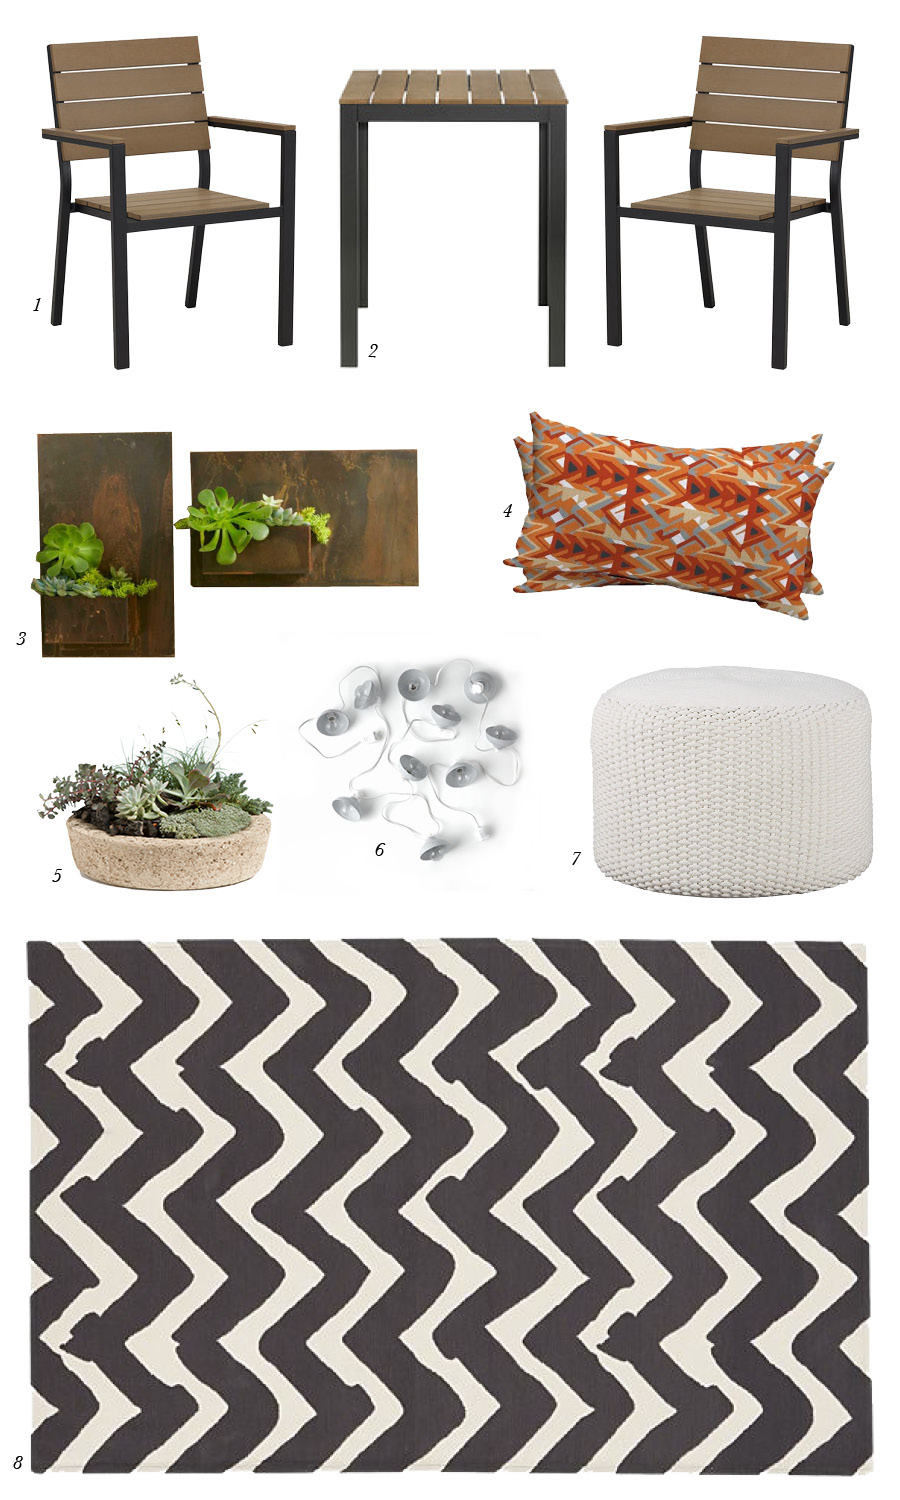 1. FALSTER Armchairfrom IKEA; 2. FALSTER Bistro Table from IKEA; 3. Metal Planter Wall Art from Vivaterra; 4. Tribal Triangle Orange Pillow Set from Target; 5. Low Profile Hypertufa Planter, No. 3 from Terrain; 6. Industrial String Lights from West Elm; 7. Criss Knit Indoor-Outdoor Pouf from CB2; 8. Chevron Outdoor Rug from Crate & Barrel